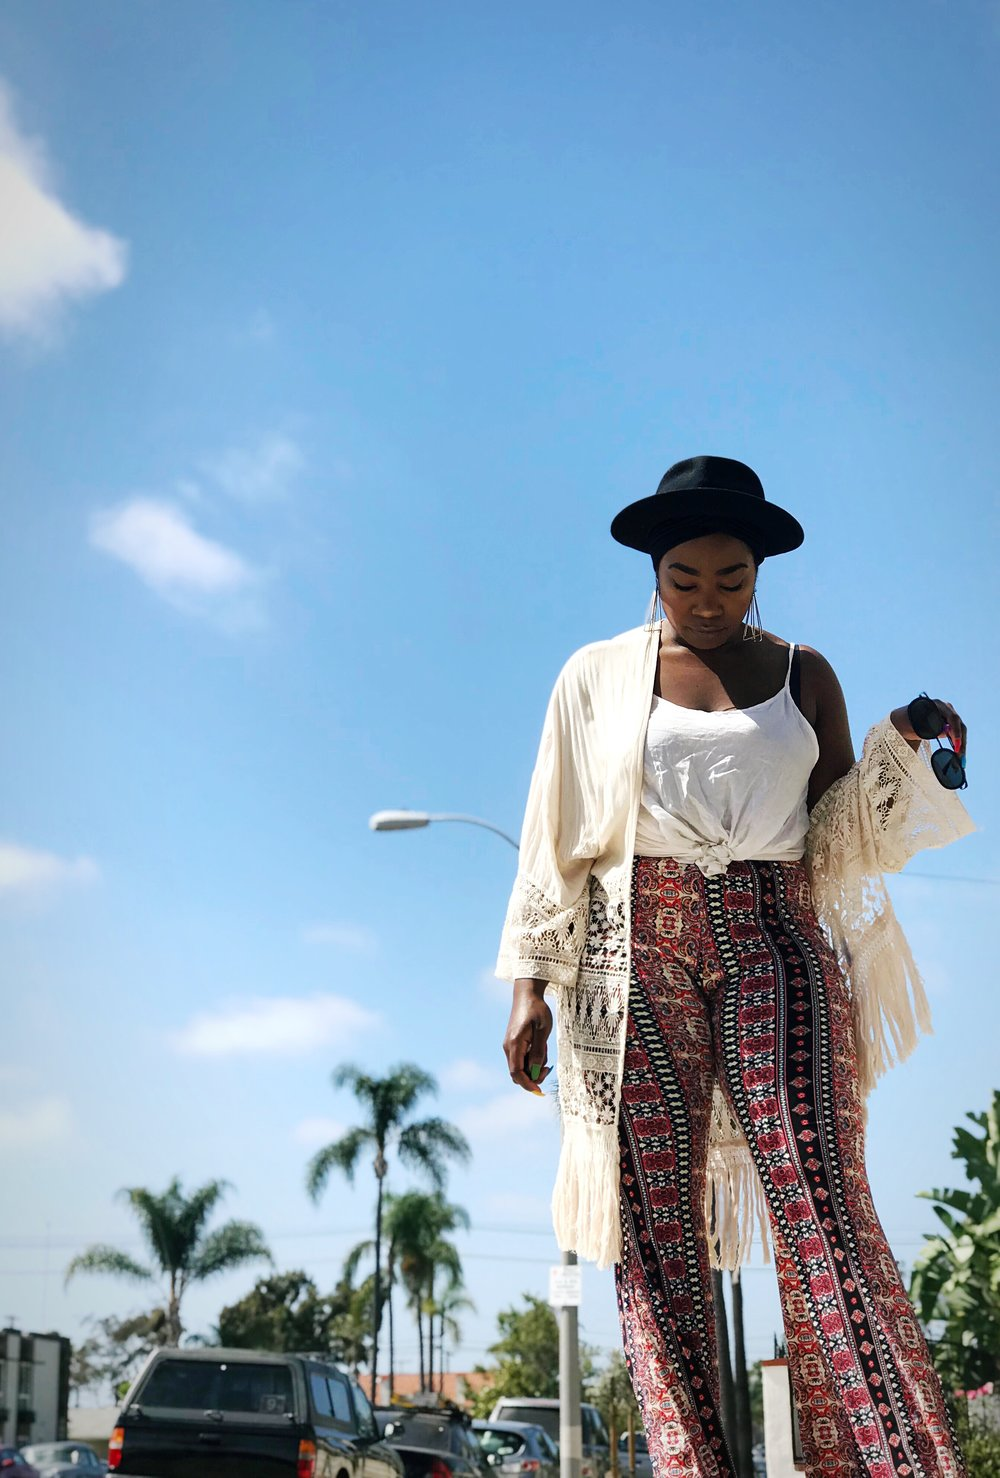 Image: Femi wearing music festival clothing outside in North Park